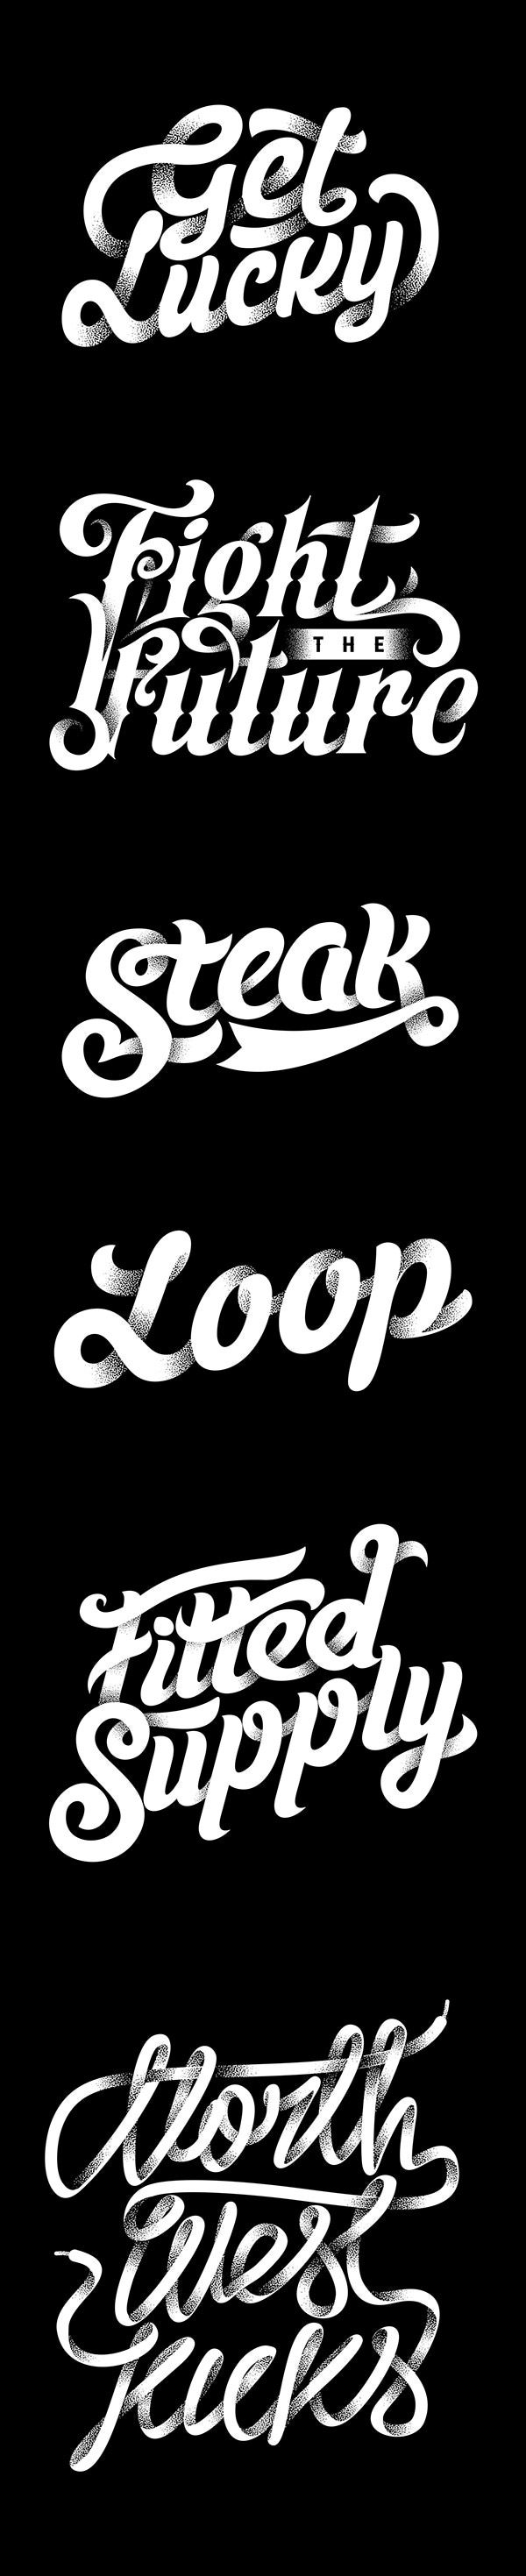 25 Cool Type & Lettering Designs | From up North